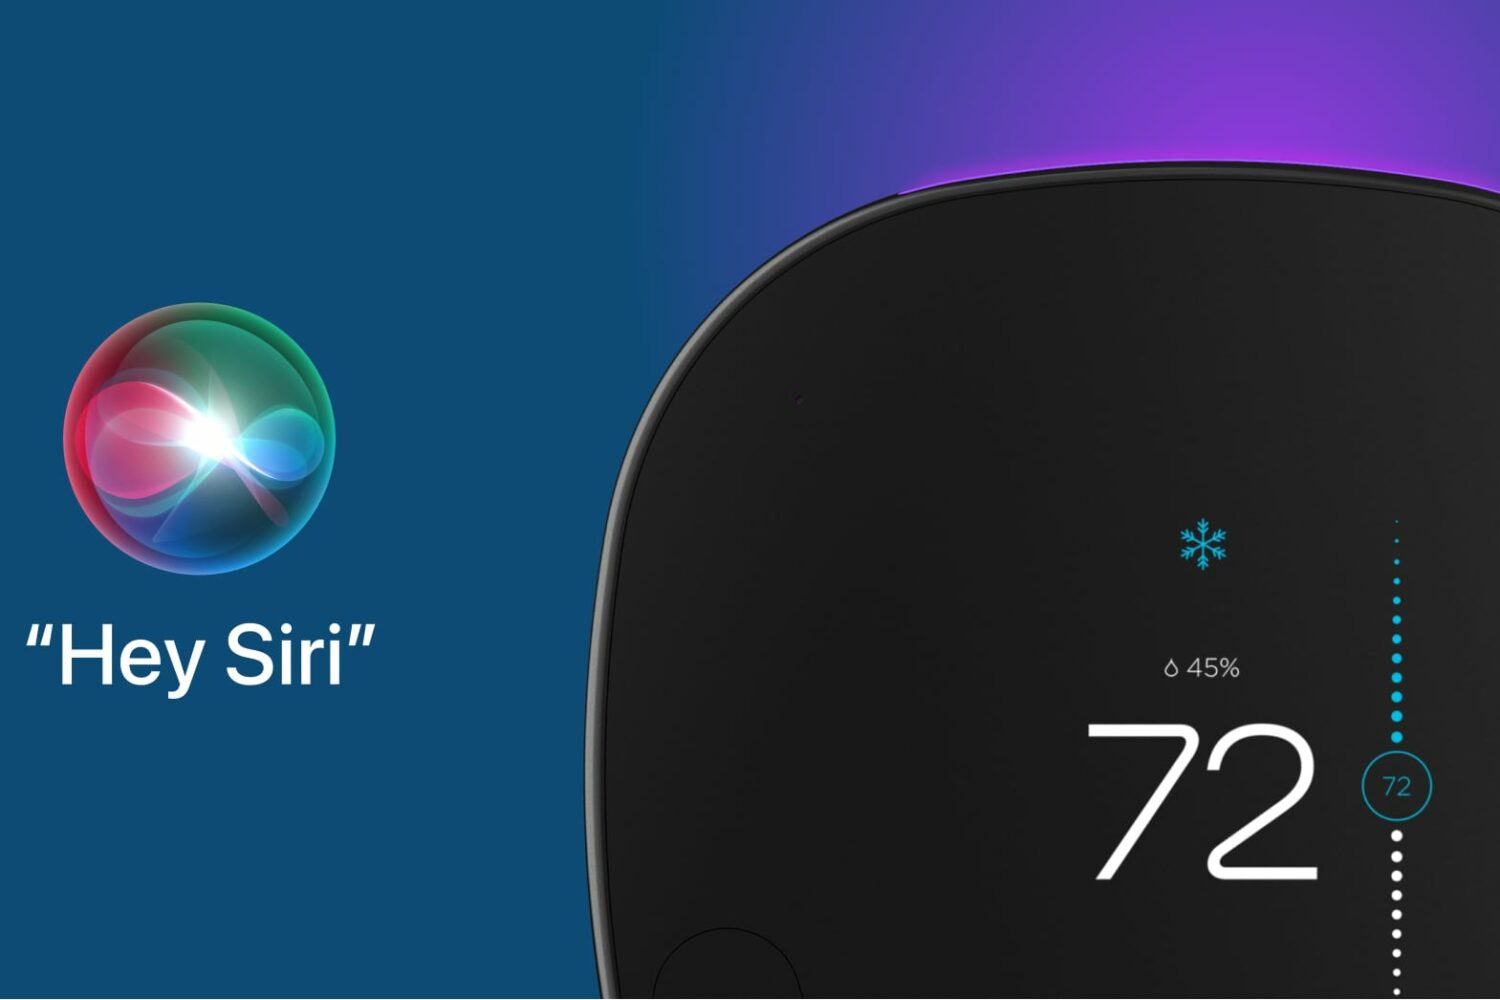 A marketing image from Ecobee showing its smart thermostat and the Hey Siri orb set against a blue/pink gradient